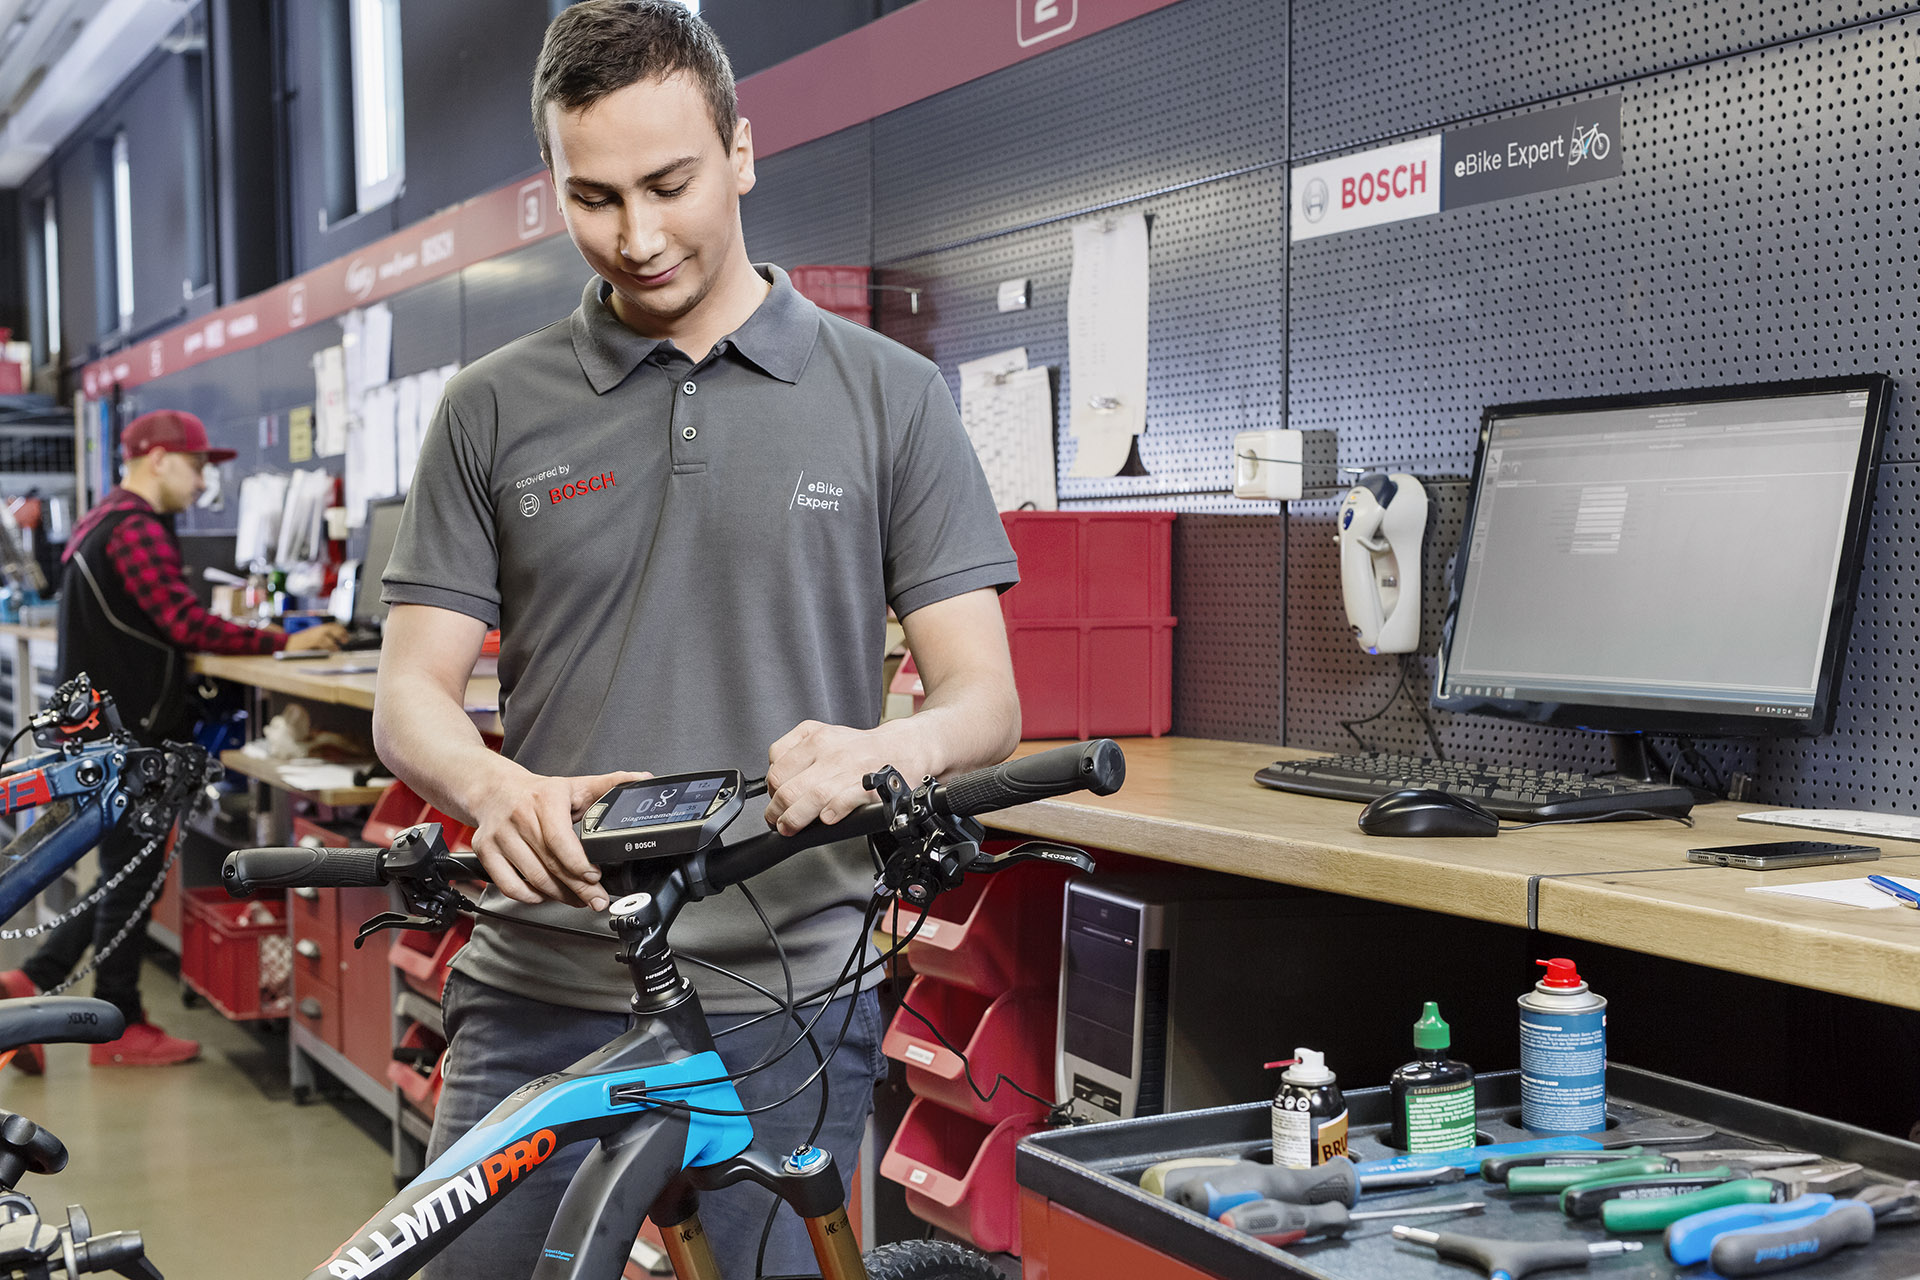 2017 2018 training tour bosch ebike systems brings dealers up to date bosch media service. Black Bedroom Furniture Sets. Home Design Ideas